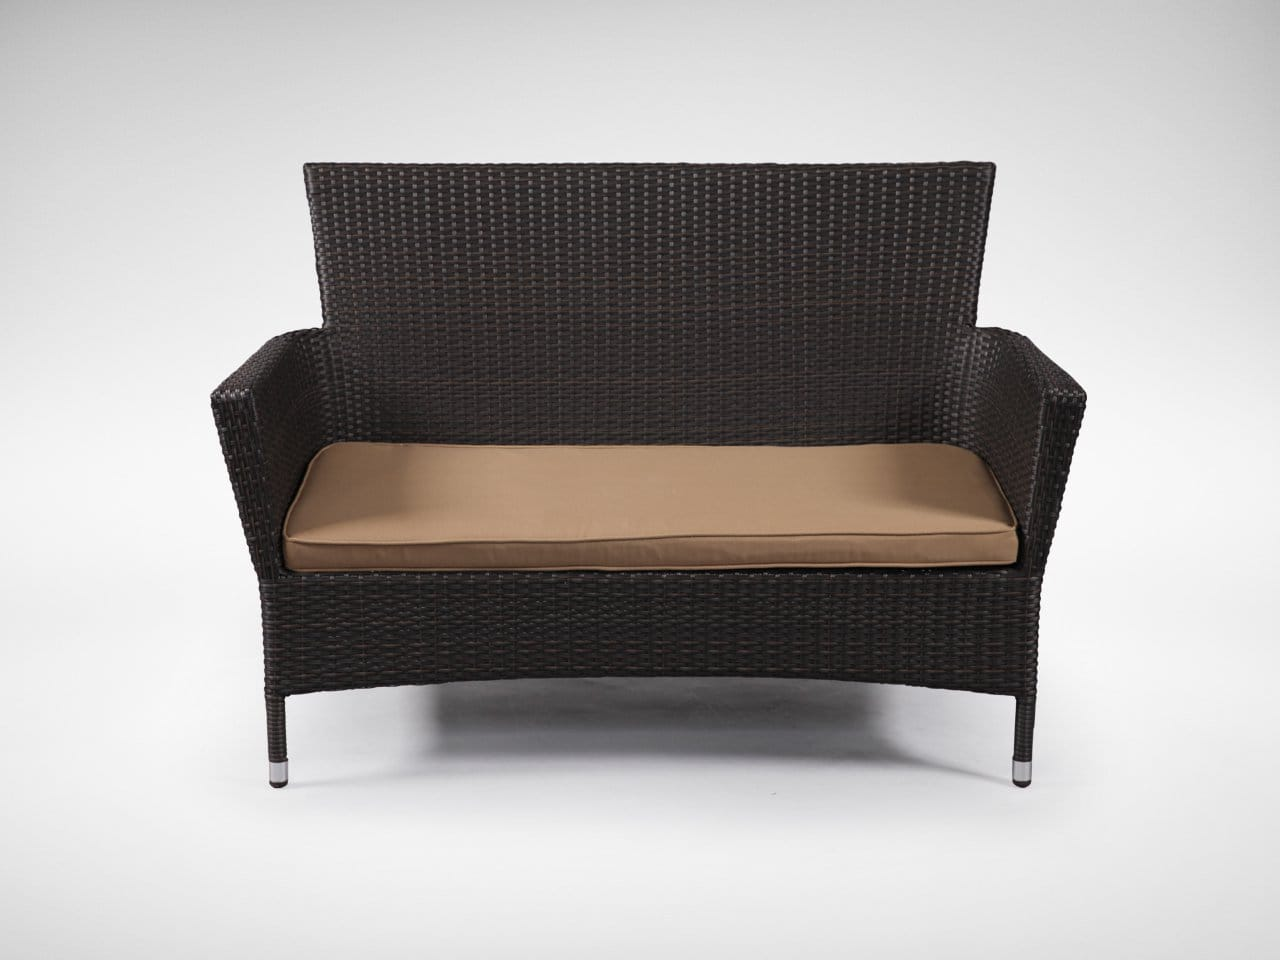 outdoor sofa singapore discount sectionals bahamas comfort design the chair and table